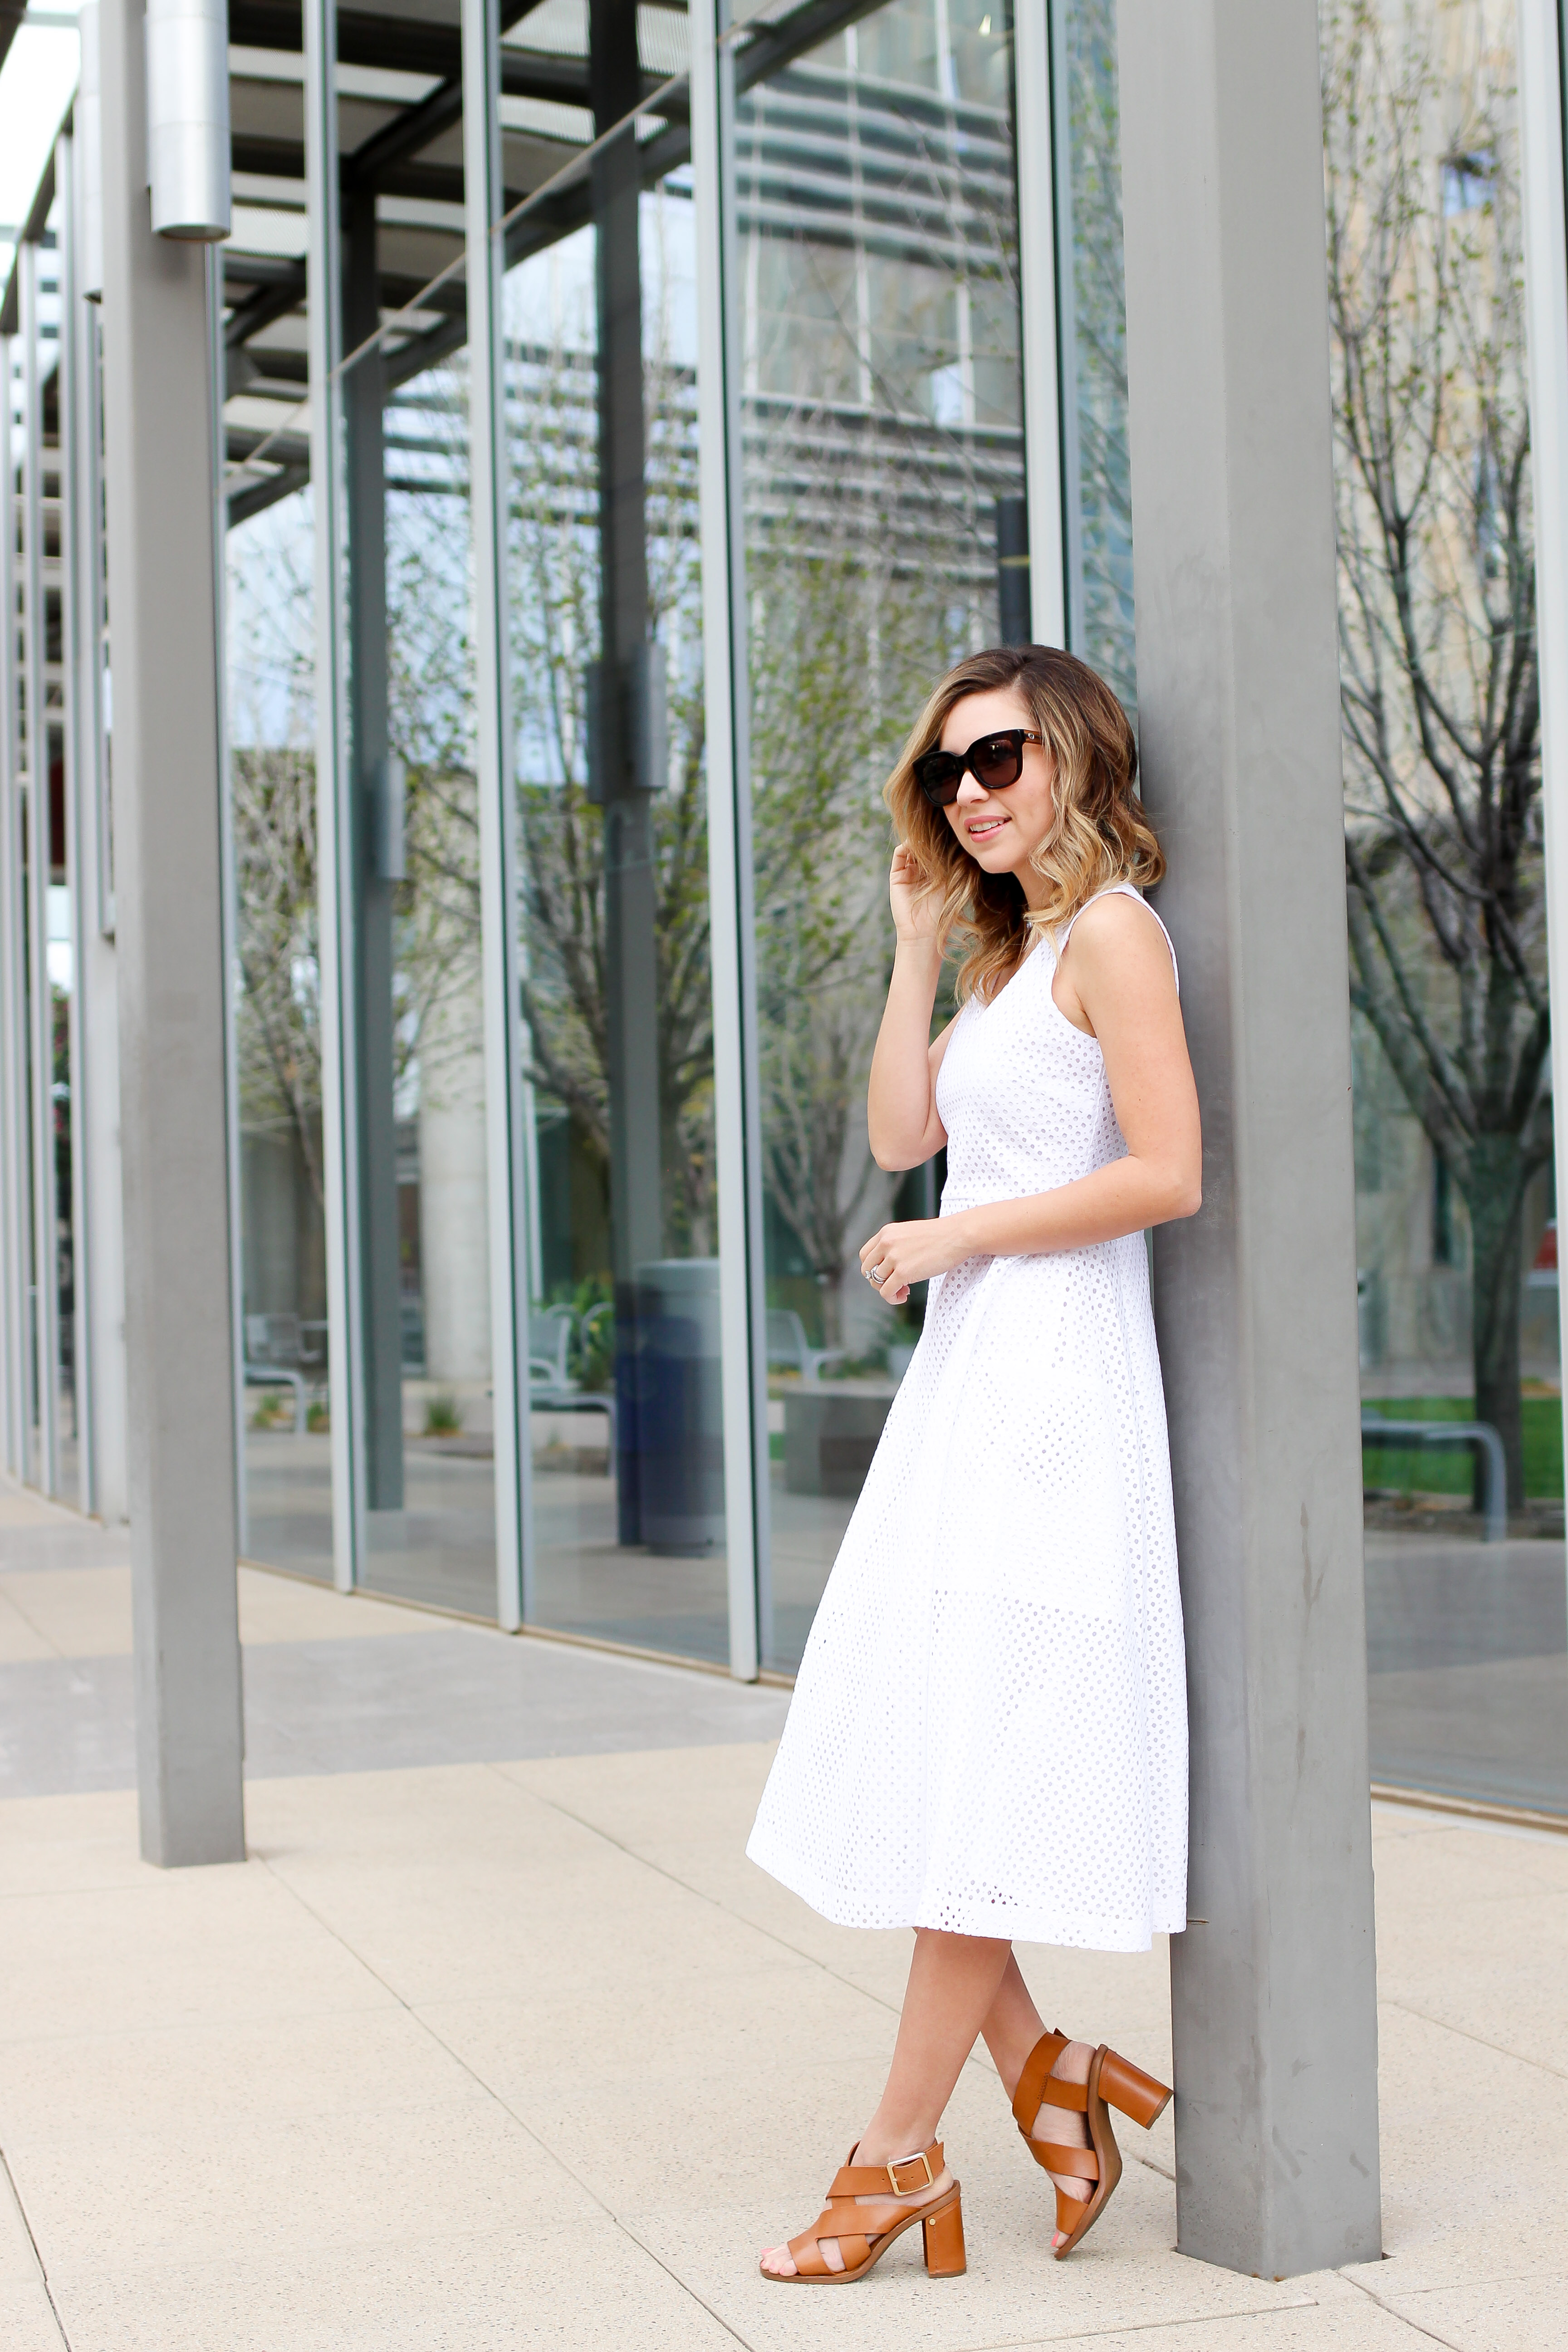 6c5e73141 Simply Sutter – Banana Republic – White Dress – Summer Dress – White Dress  outfit – best whtie dresses – summer style_2843